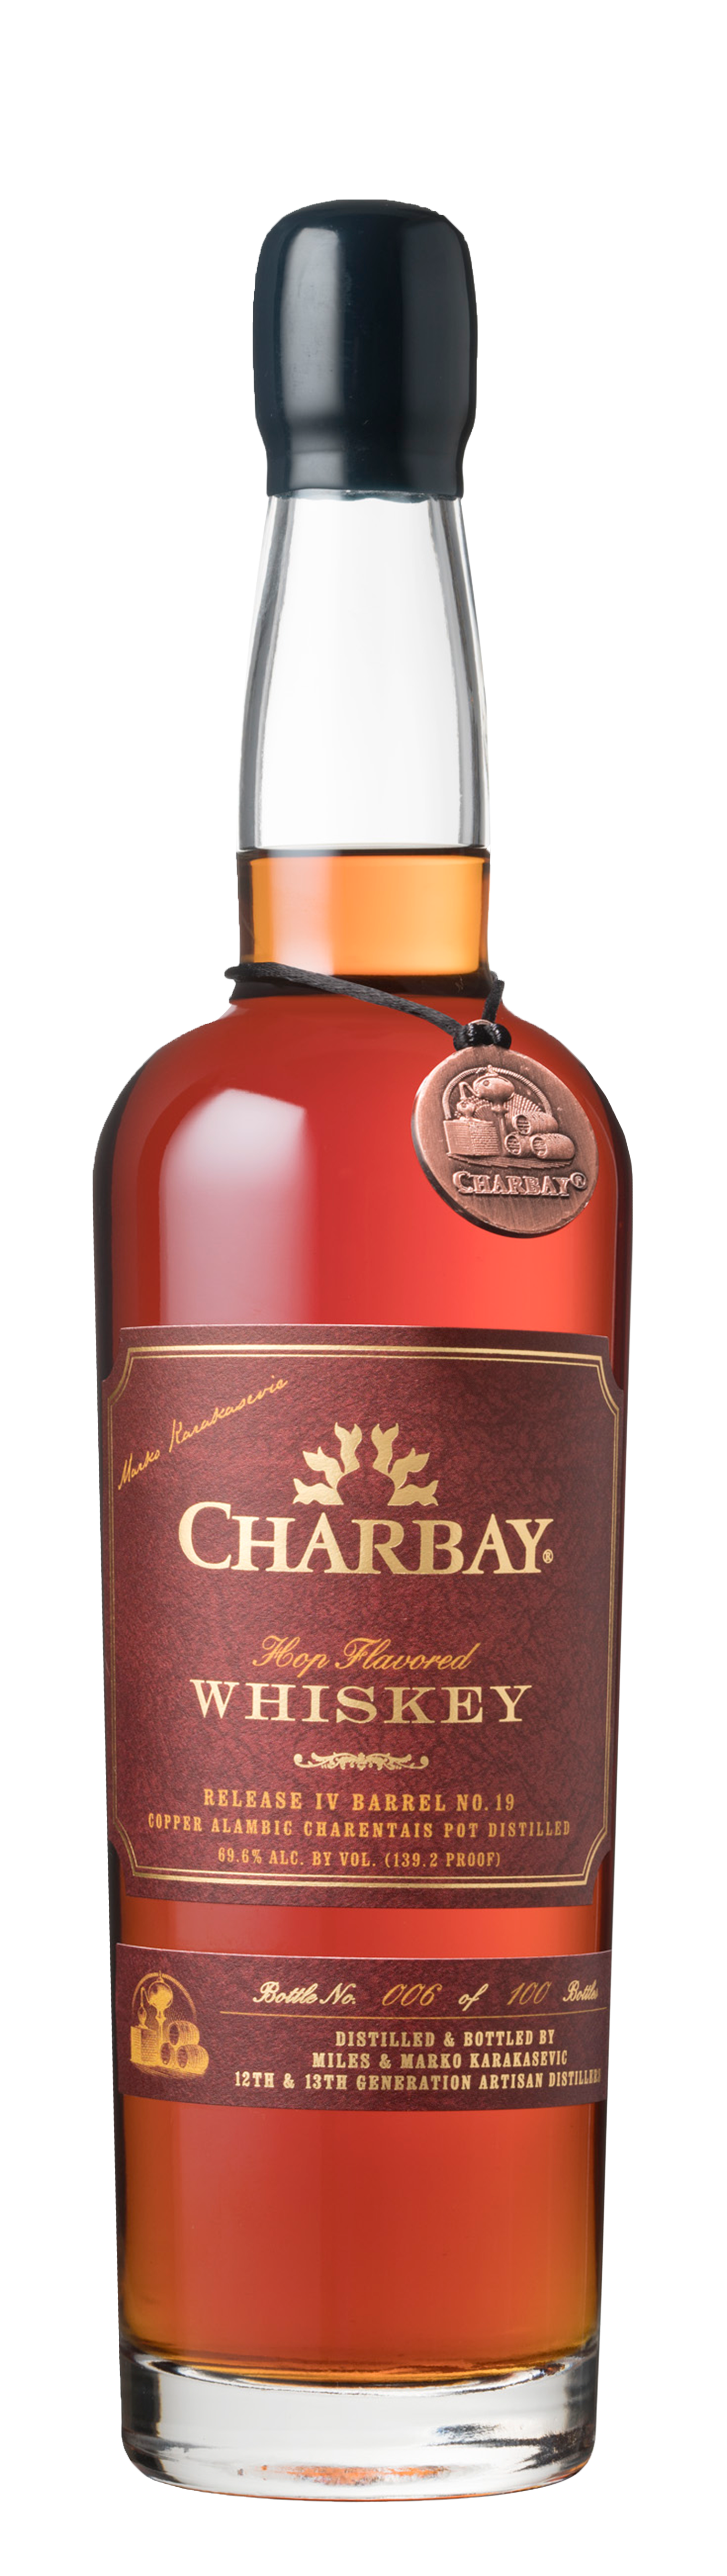 Whiskey Release IV